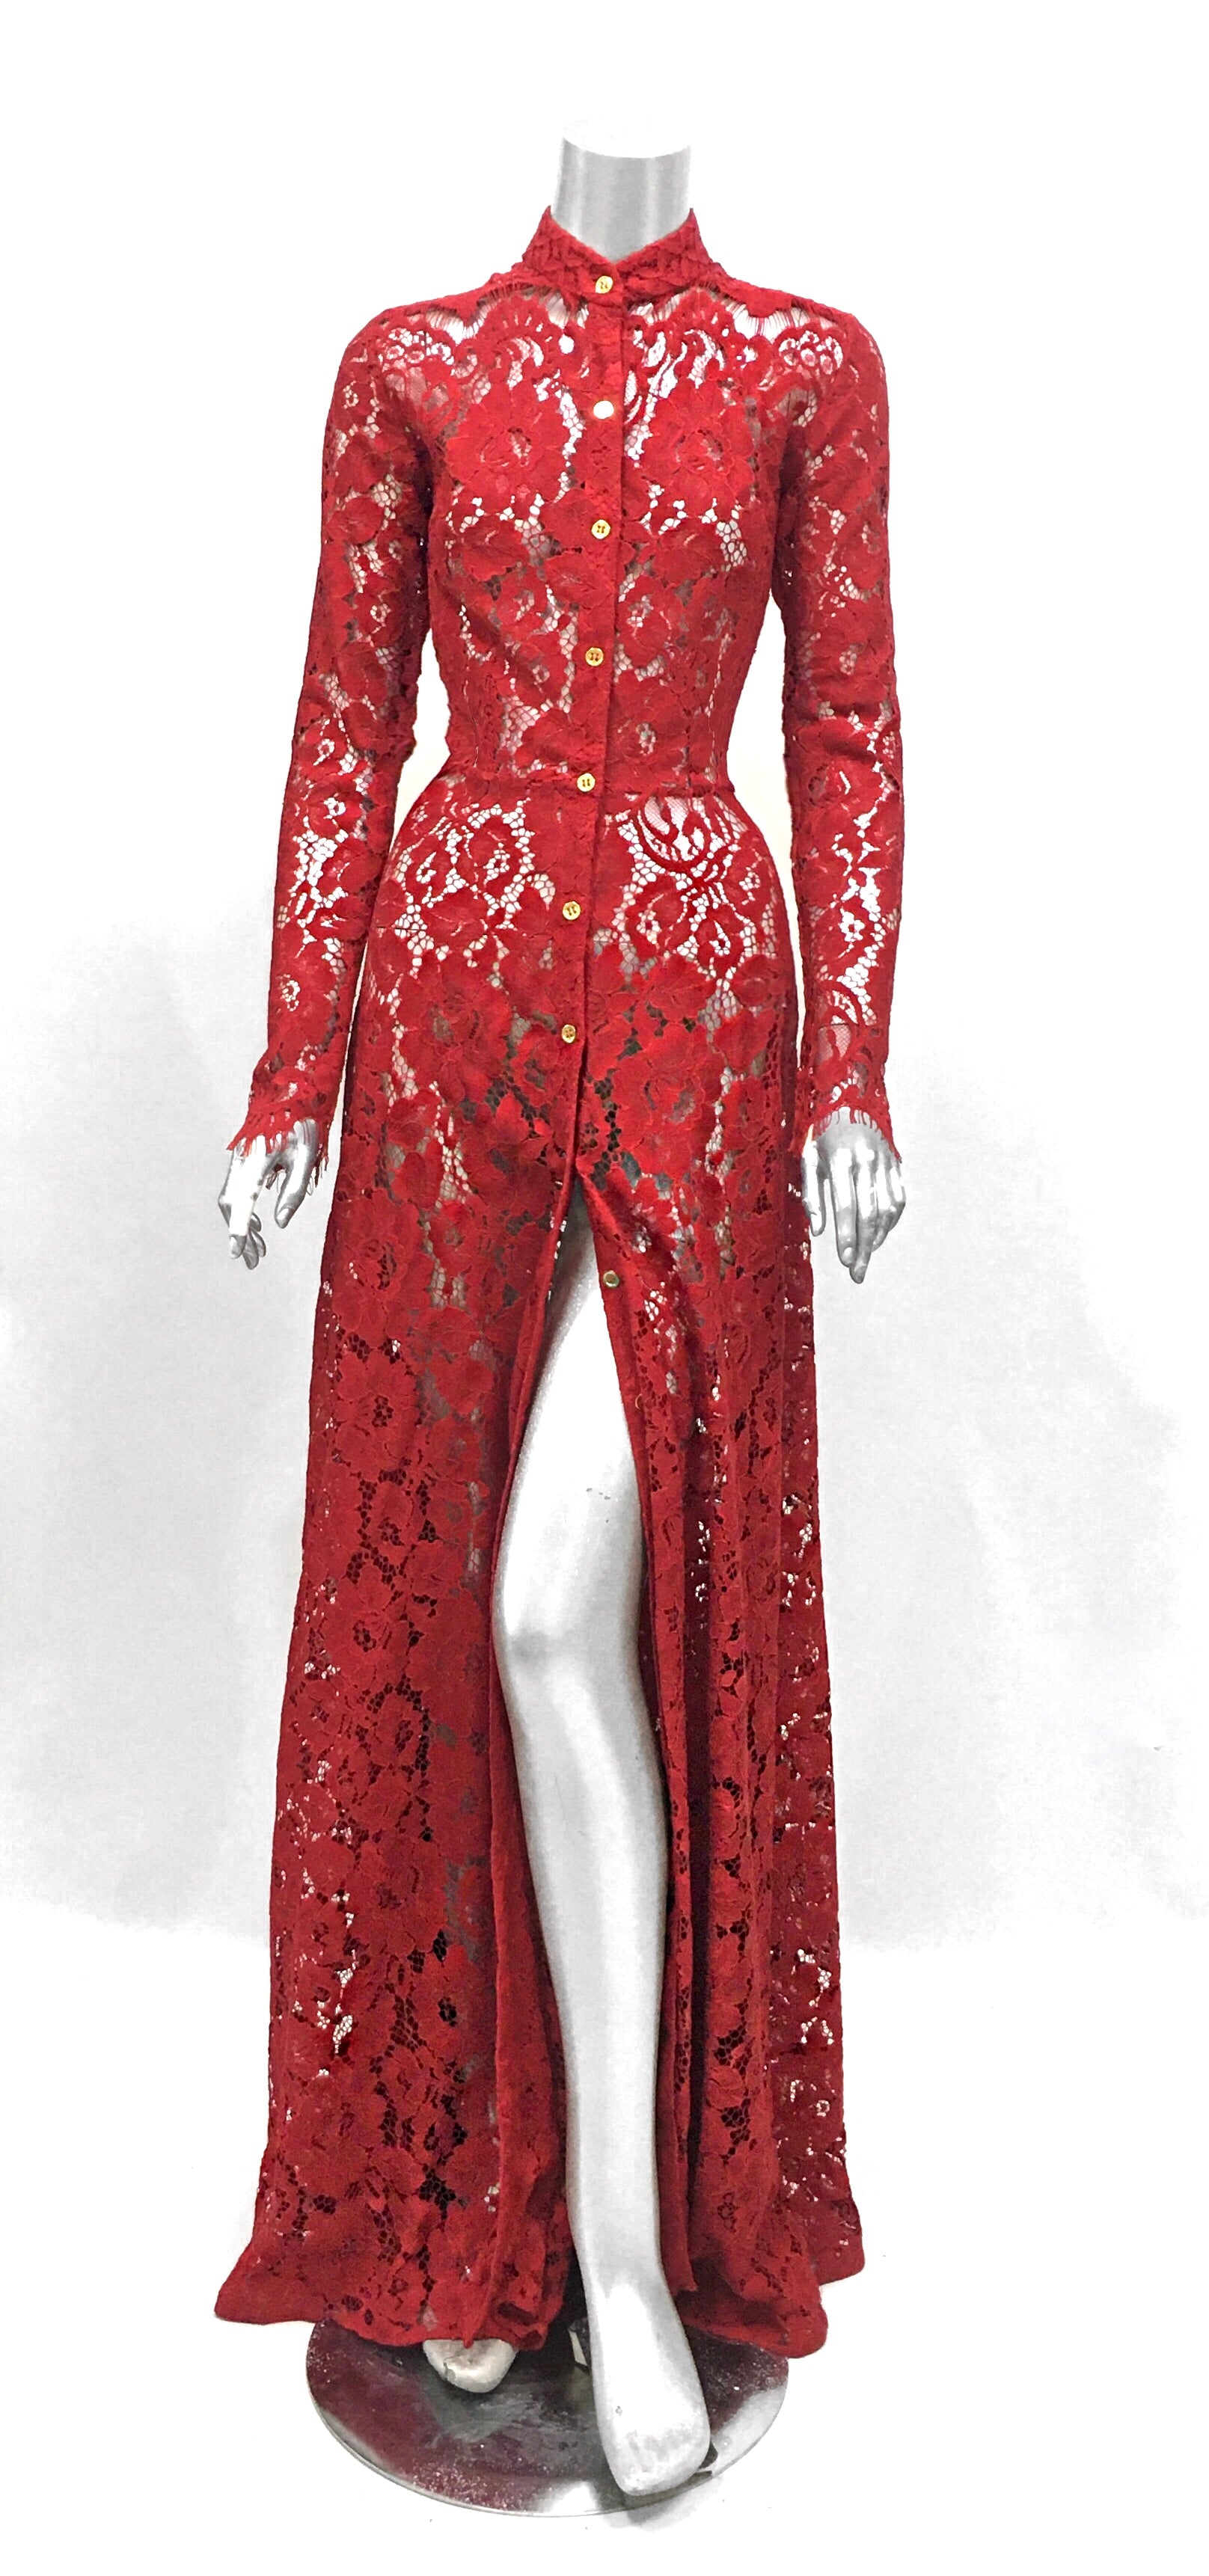 Keneea Linton Red Dentelle Gown